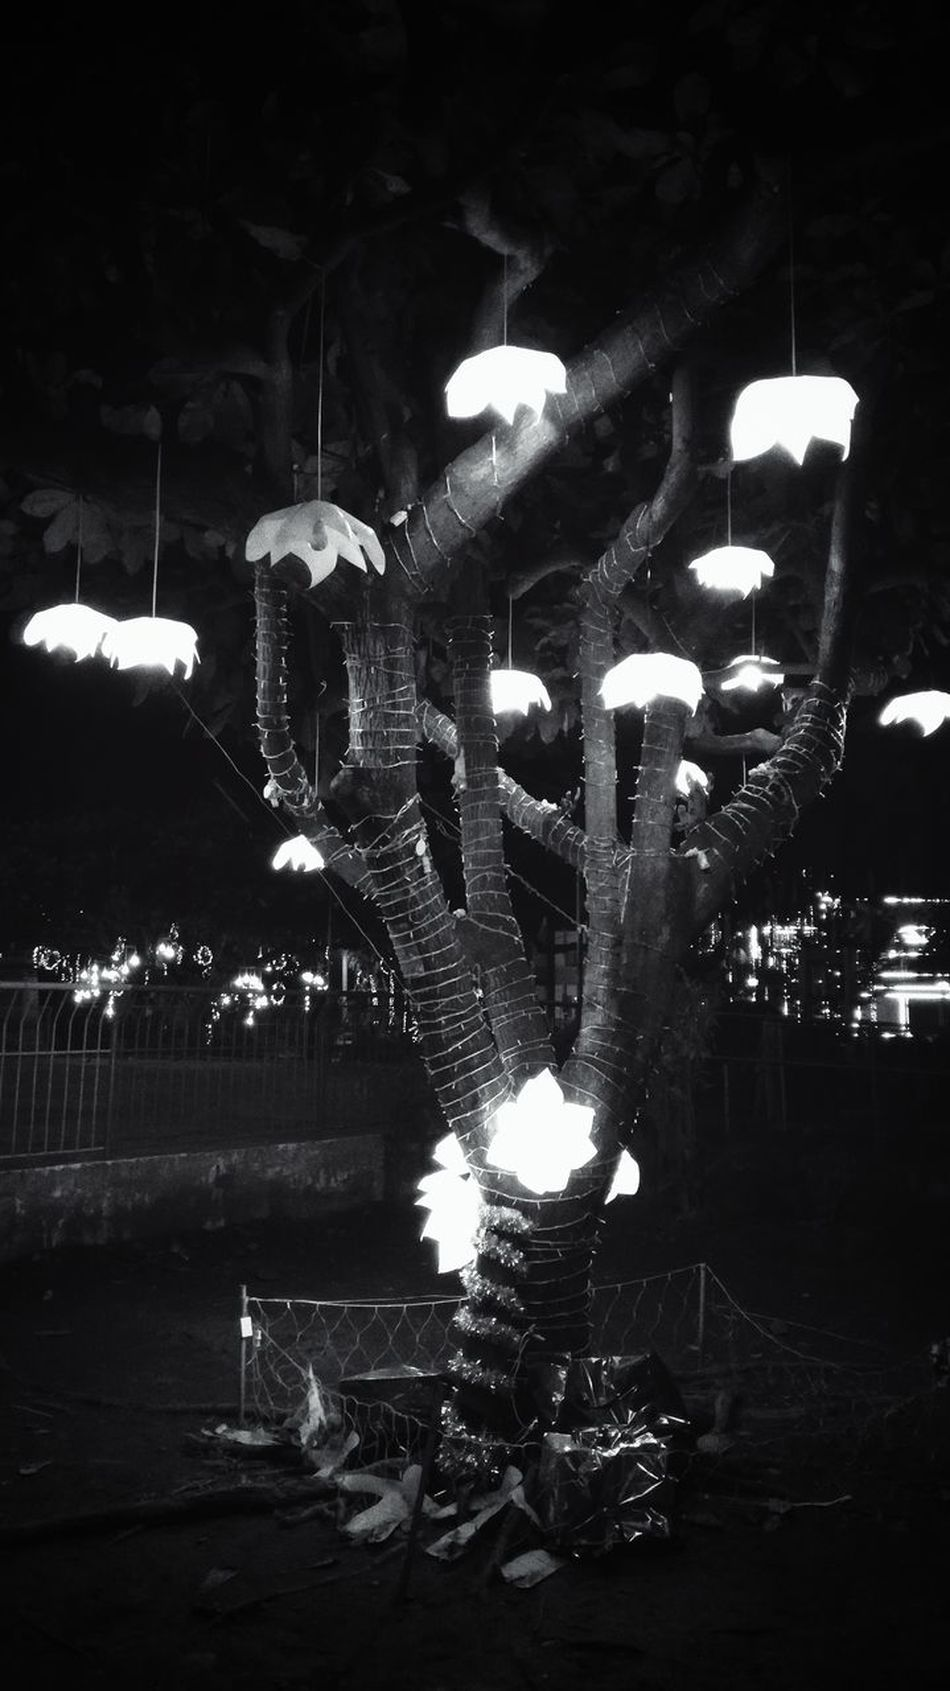 Lighted Tree Night EyeemPhilippines The City Light Lines And Patterns Belief And Faith Culture And Tradition Eyeem Philippines Black And White Collection  Black & White Photography EyeEm Travel Photography Arts Culture And Entertainment Sculpture